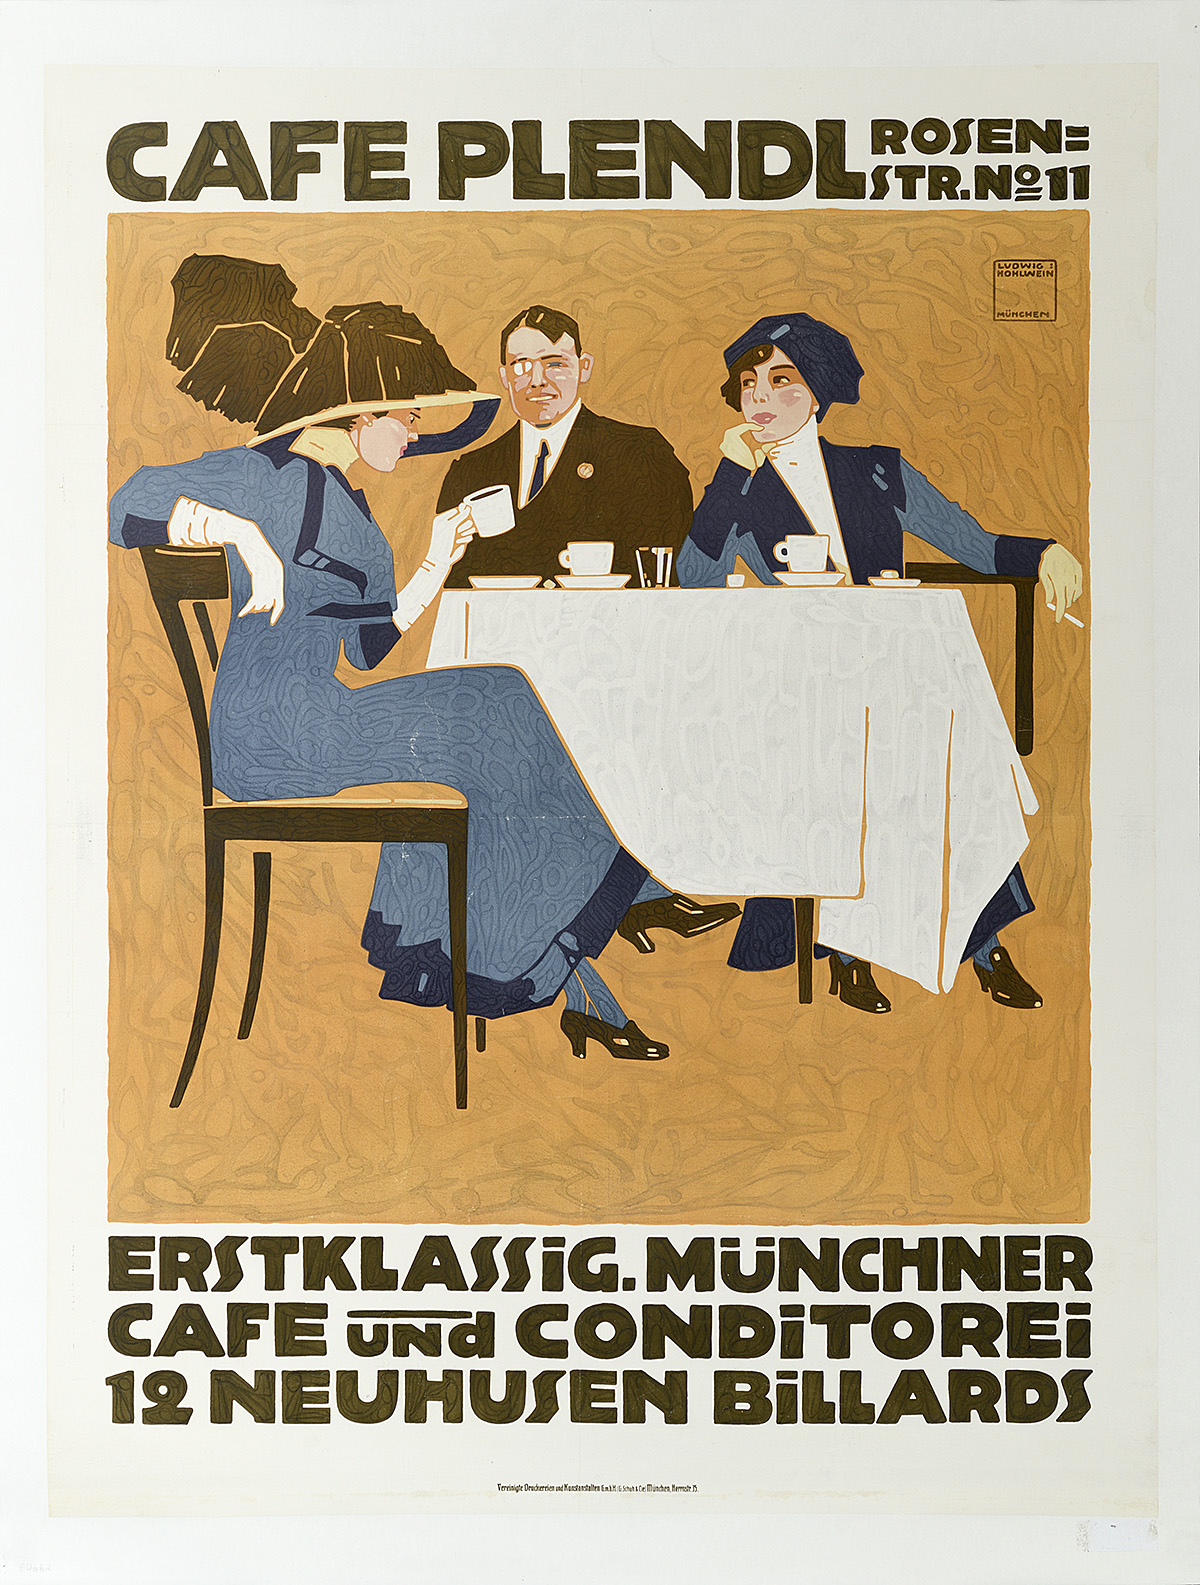 illustrational poster of a man and two women dressed elegantly sitting at a table having coffee